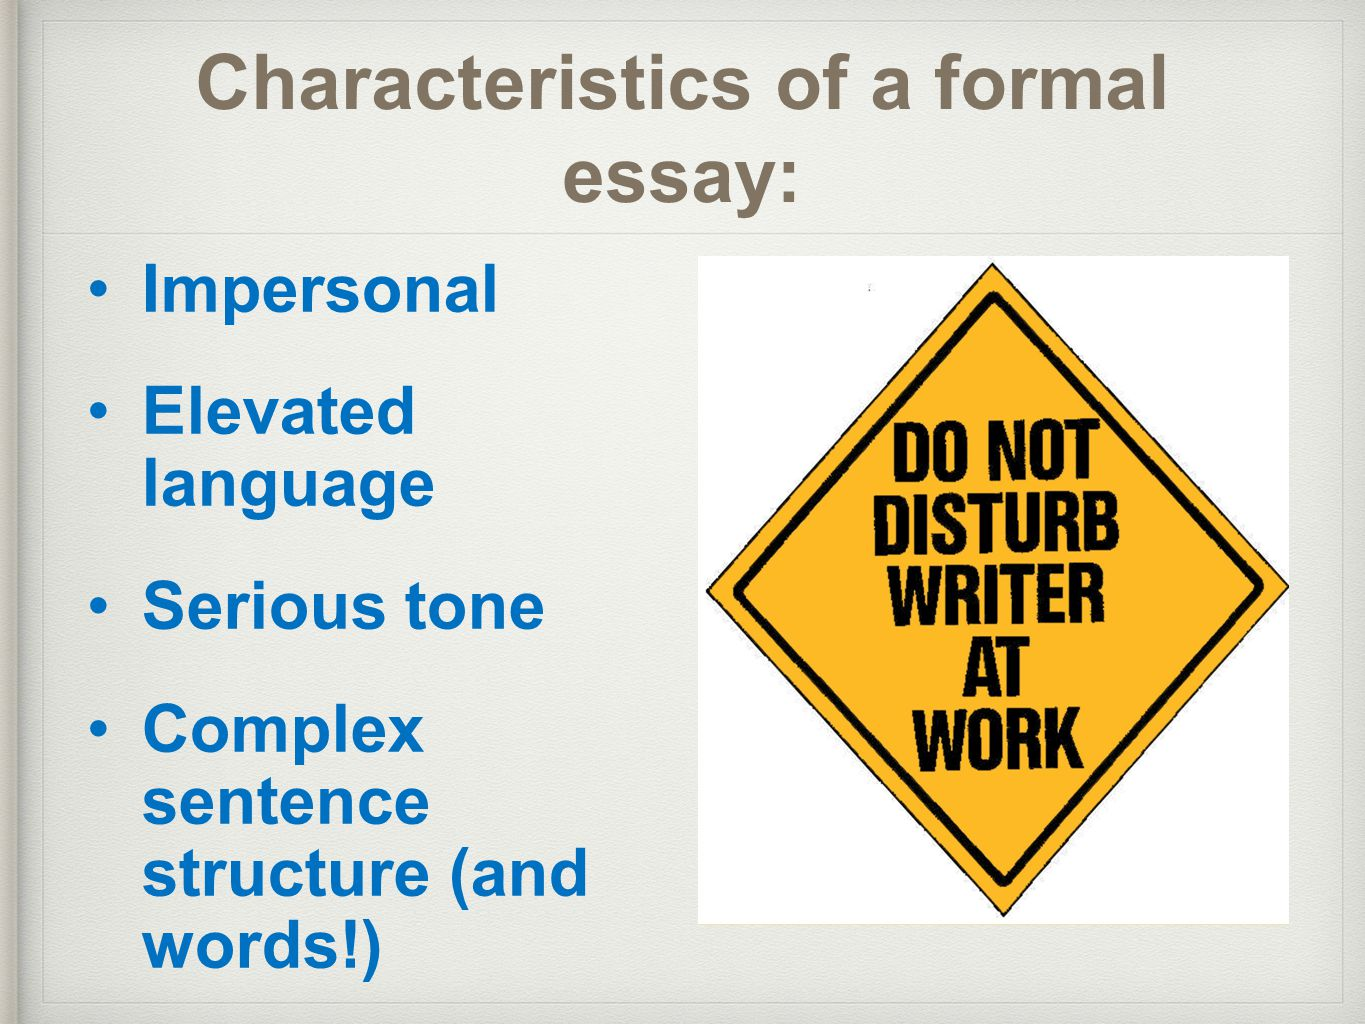 express your feelings in a formal essay For example, academic writing is generally quite formal and impersonal  direct  reference to people or feelings, and instead emphasising objects, facts and ideas   include topic sentences to show how your argument is structured  some  types of text, such as an essay, have the same basic structure in.